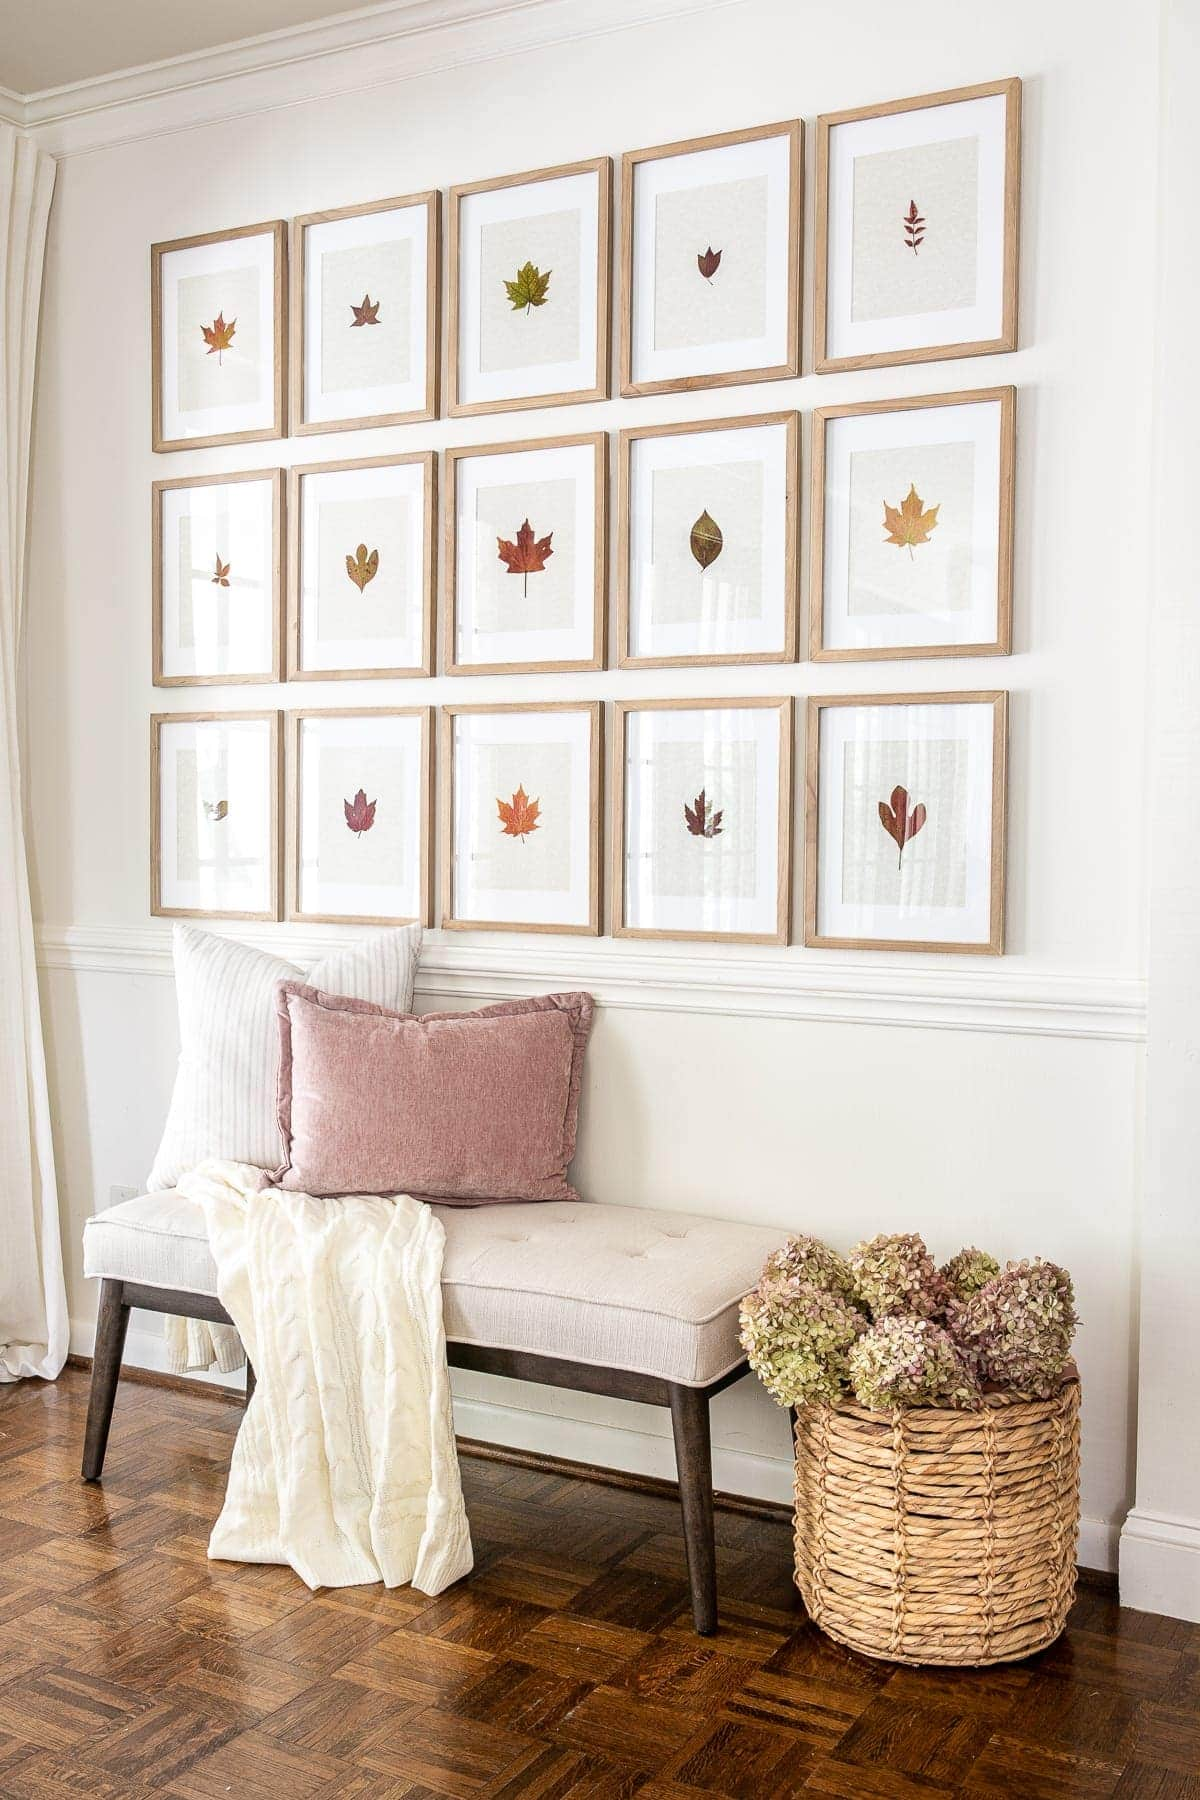 fall entryway using gallery wall with pressed leaves and dried hydrangeas in a basket beside a bench